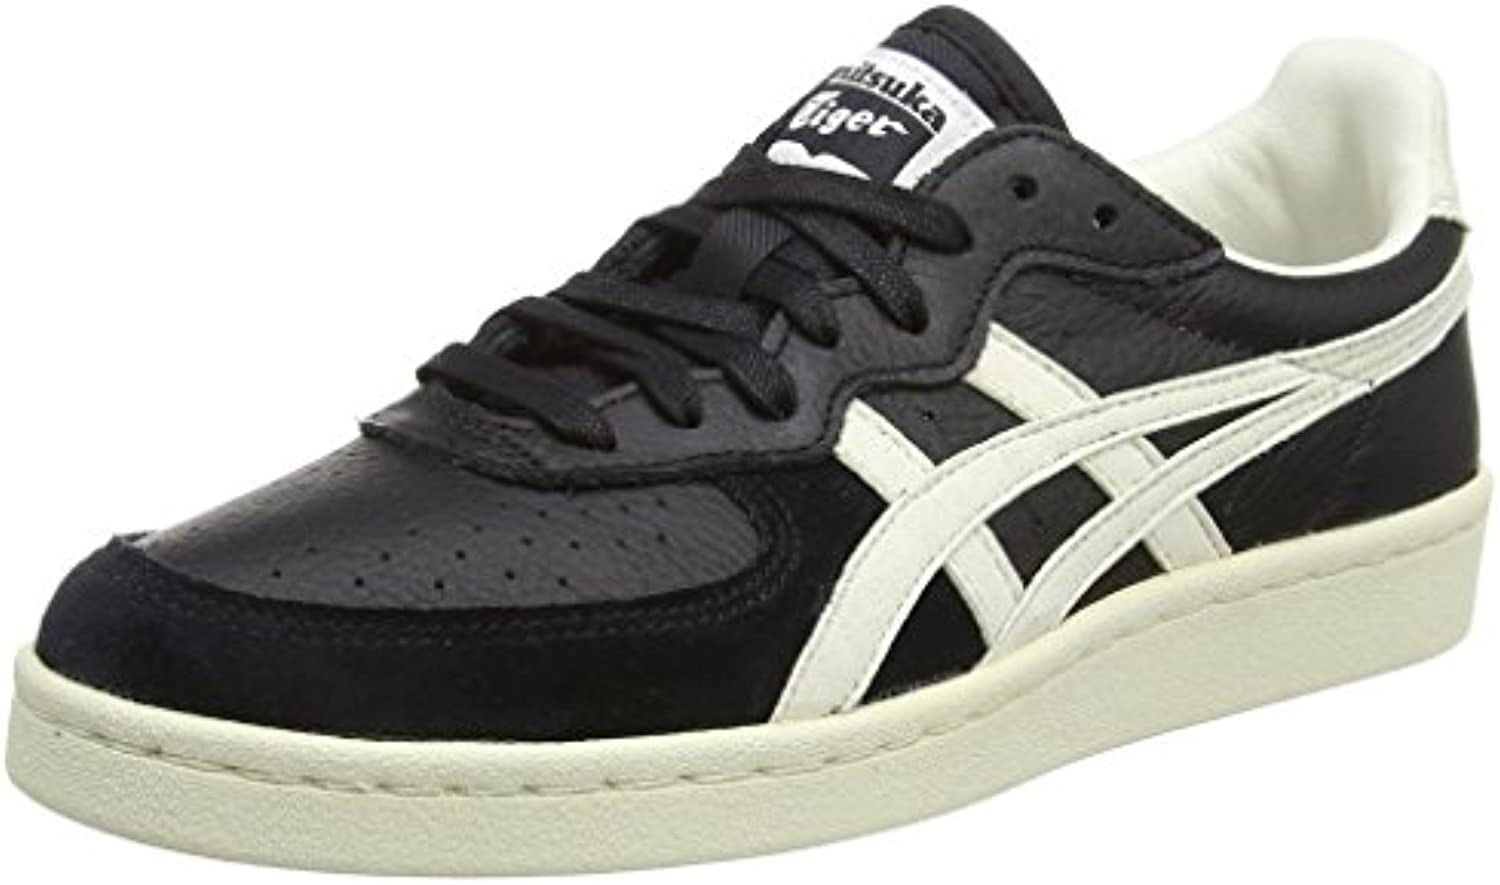 Onitsuka GSM, Tiger GSM, Onitsuka Baskets Basses Mixte AdulteB019PAEH72Parent 60f994